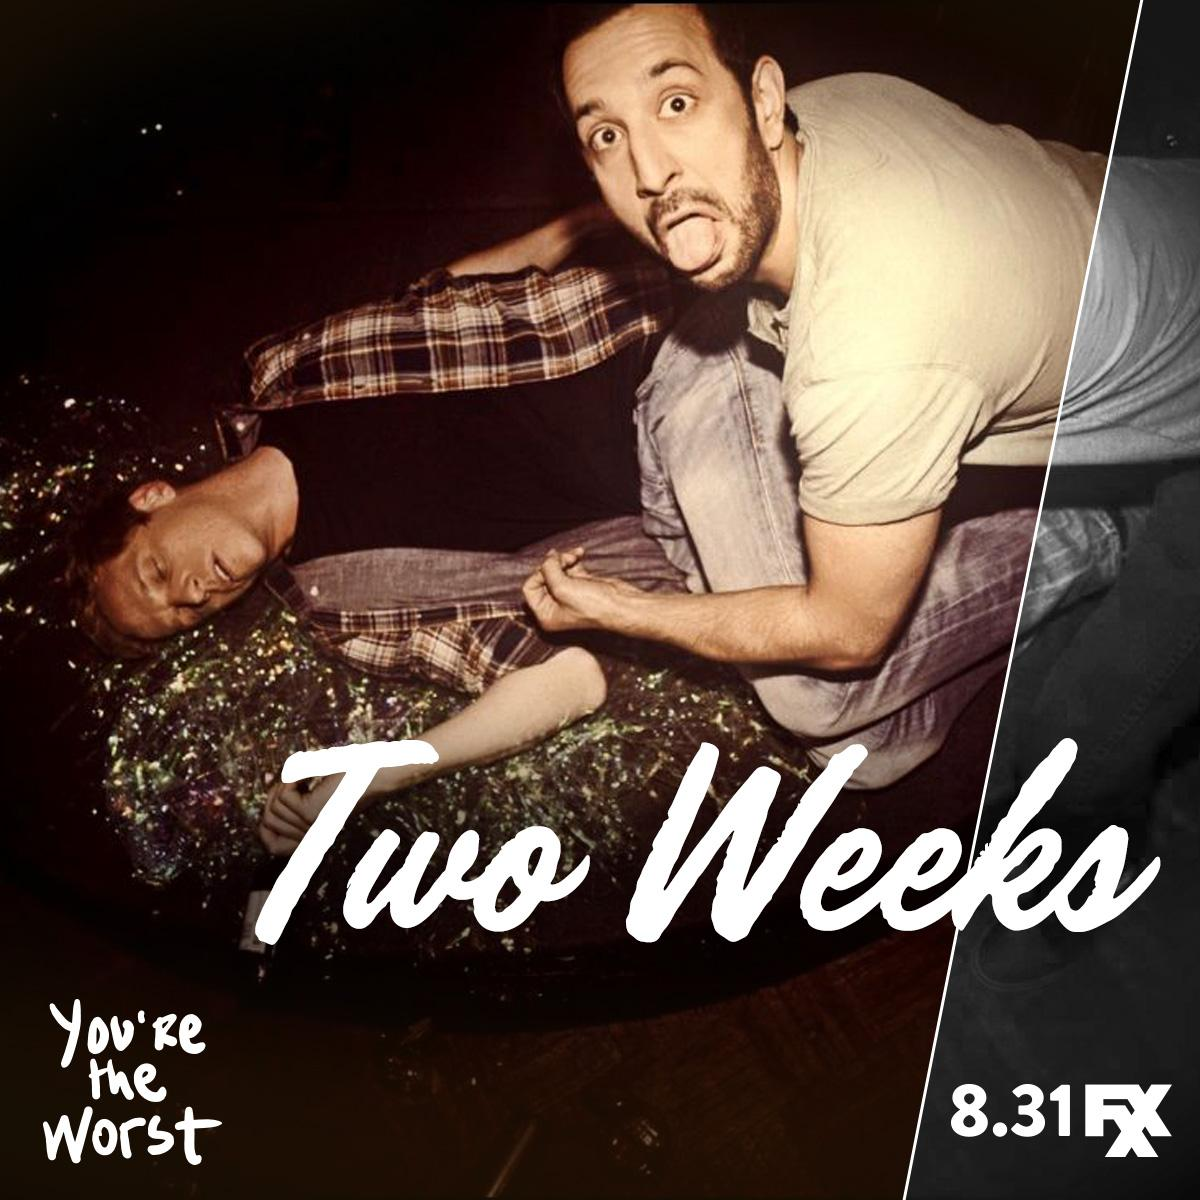 Going hard so you don't have to. The new season of #YouretheWorst returns in TWO WEEKS on @FXXNetwork.